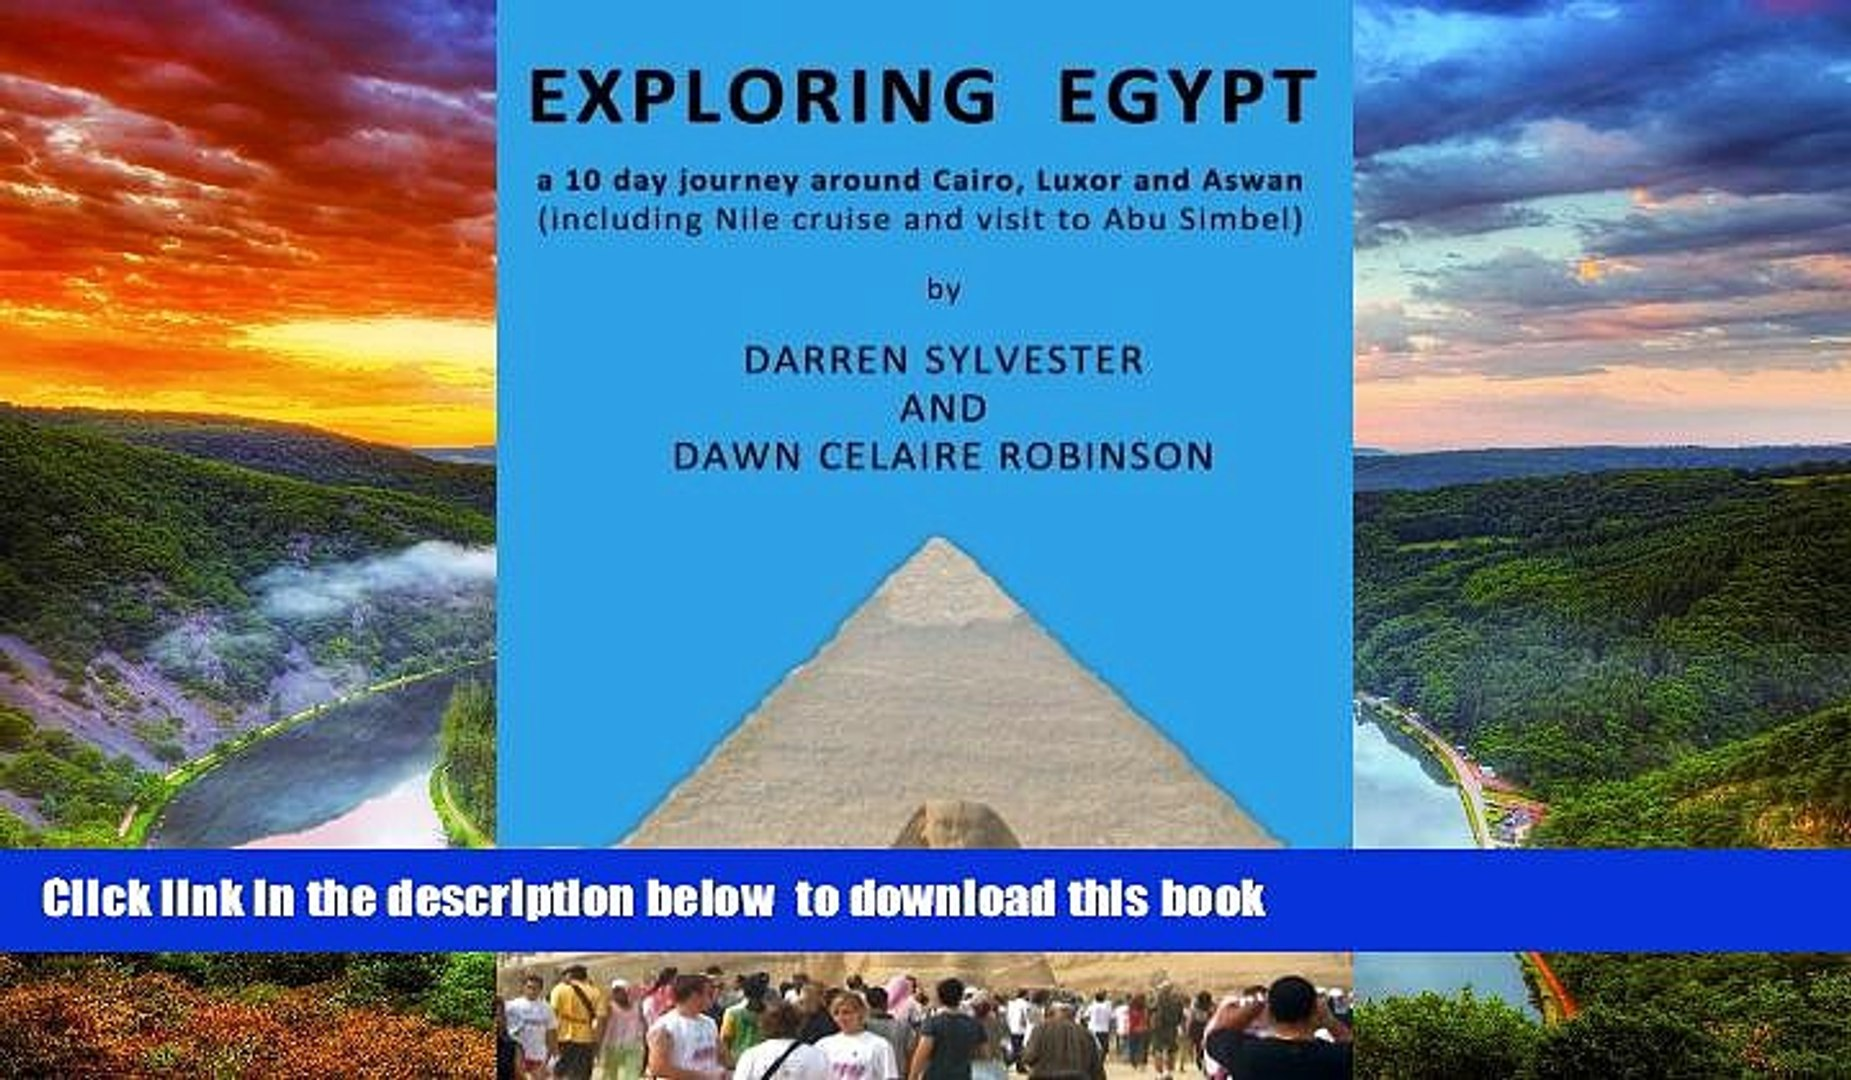 Exploring Egypt: A 10 day journey around Cairo, Luxor and Aswan